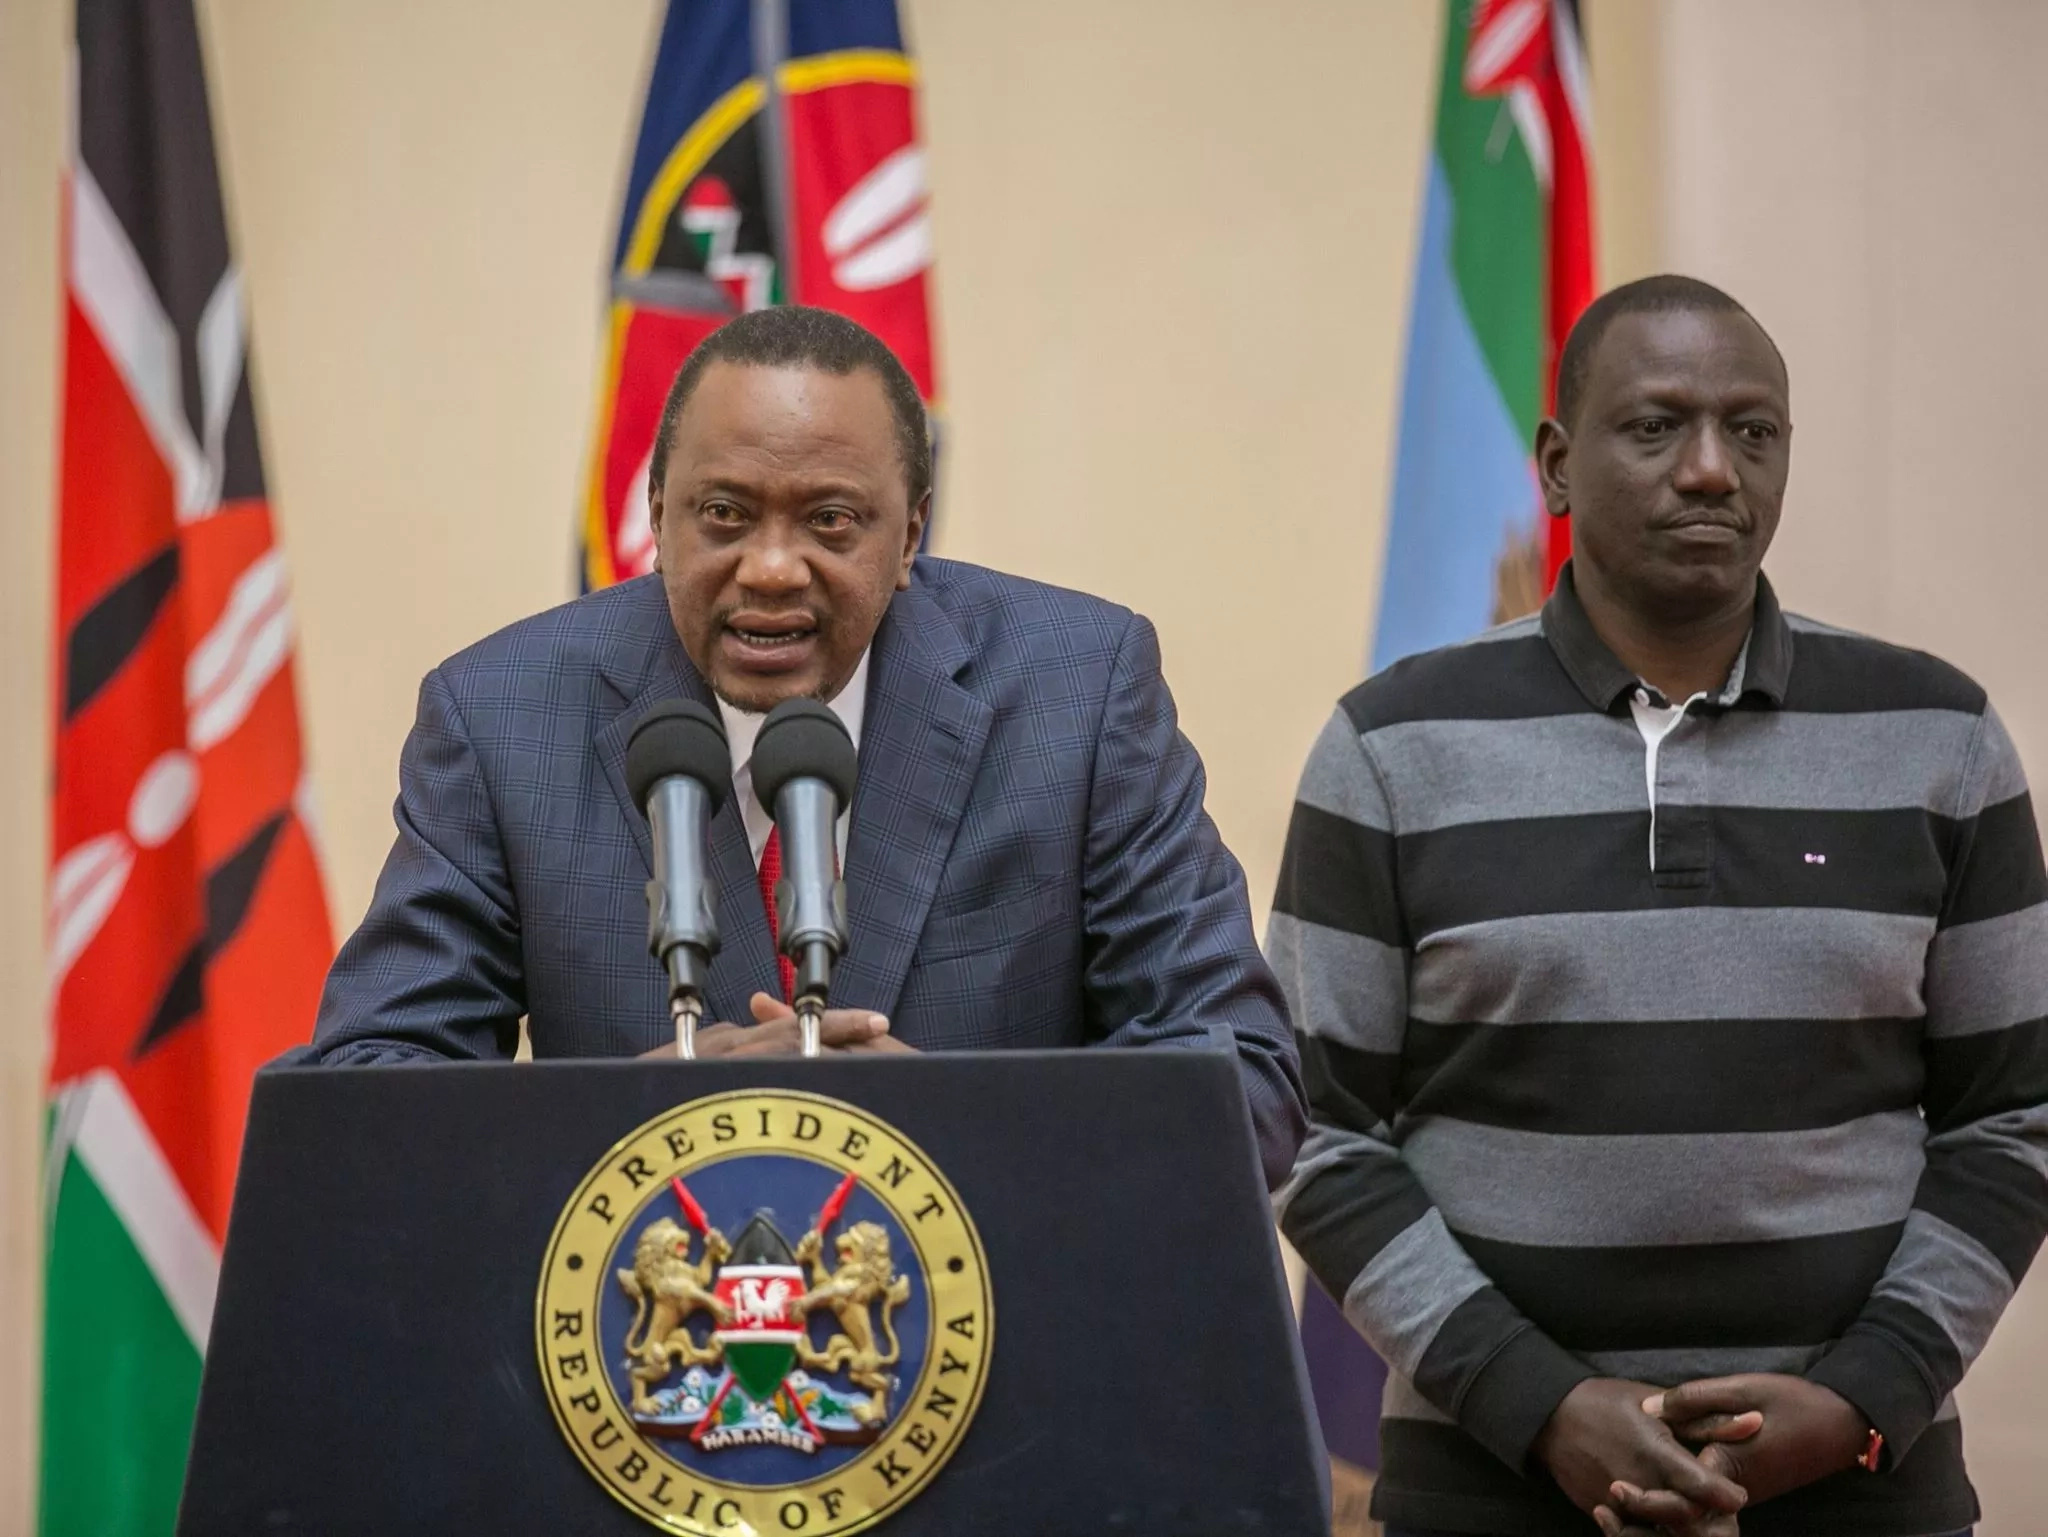 Kenya: Supreme Court nullifies elections